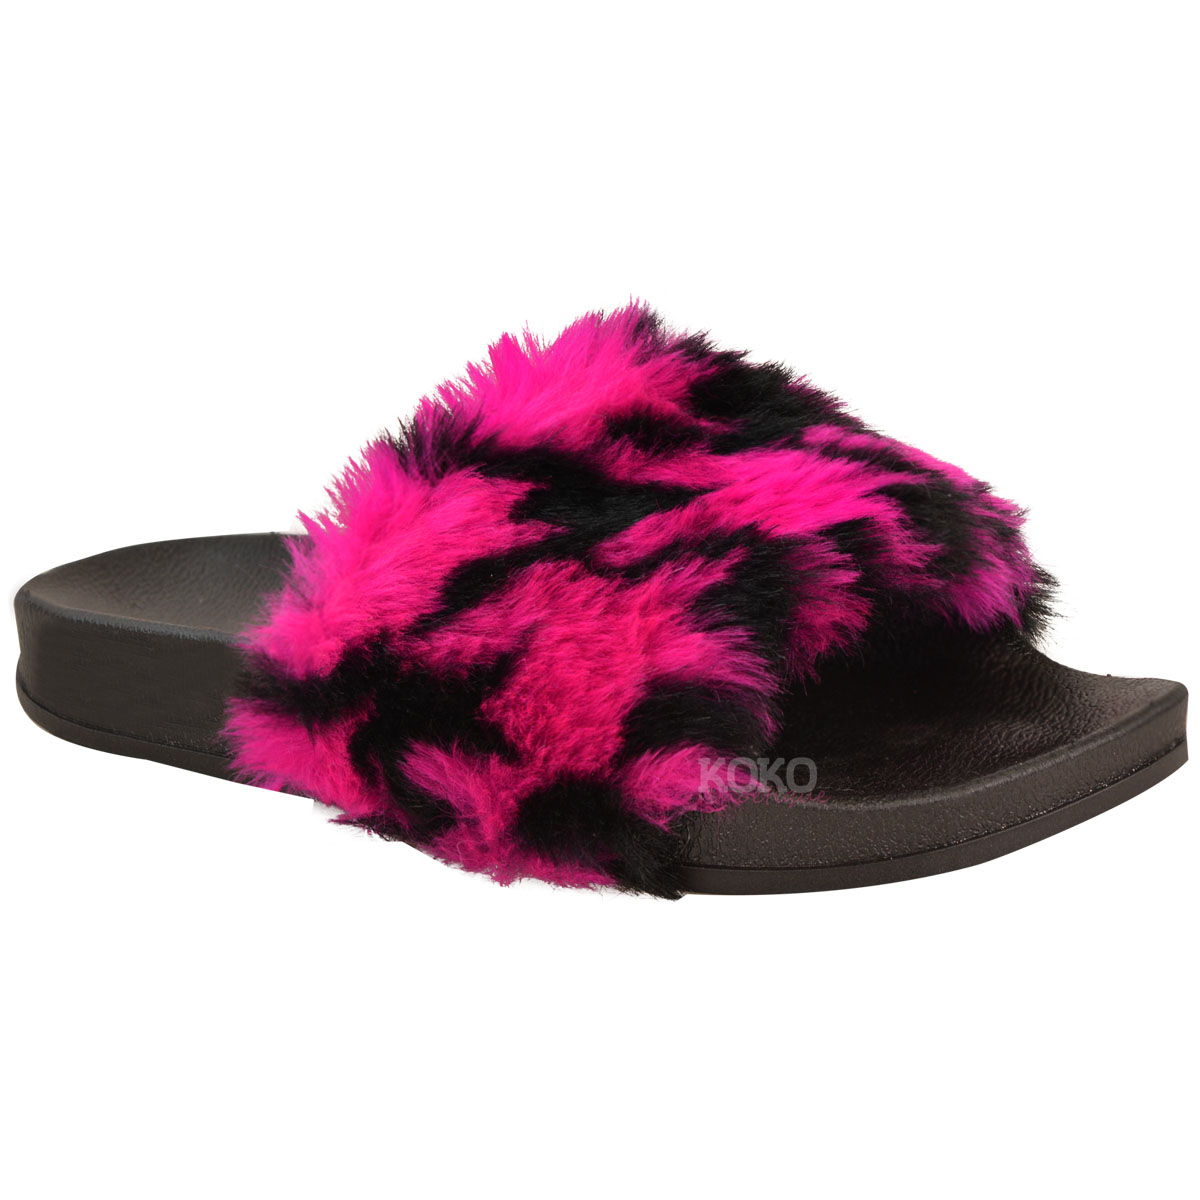 Womens Ladies Slip On Sliders Multi Colour Flats Faux Fur Slippers Sandals Size | eBay